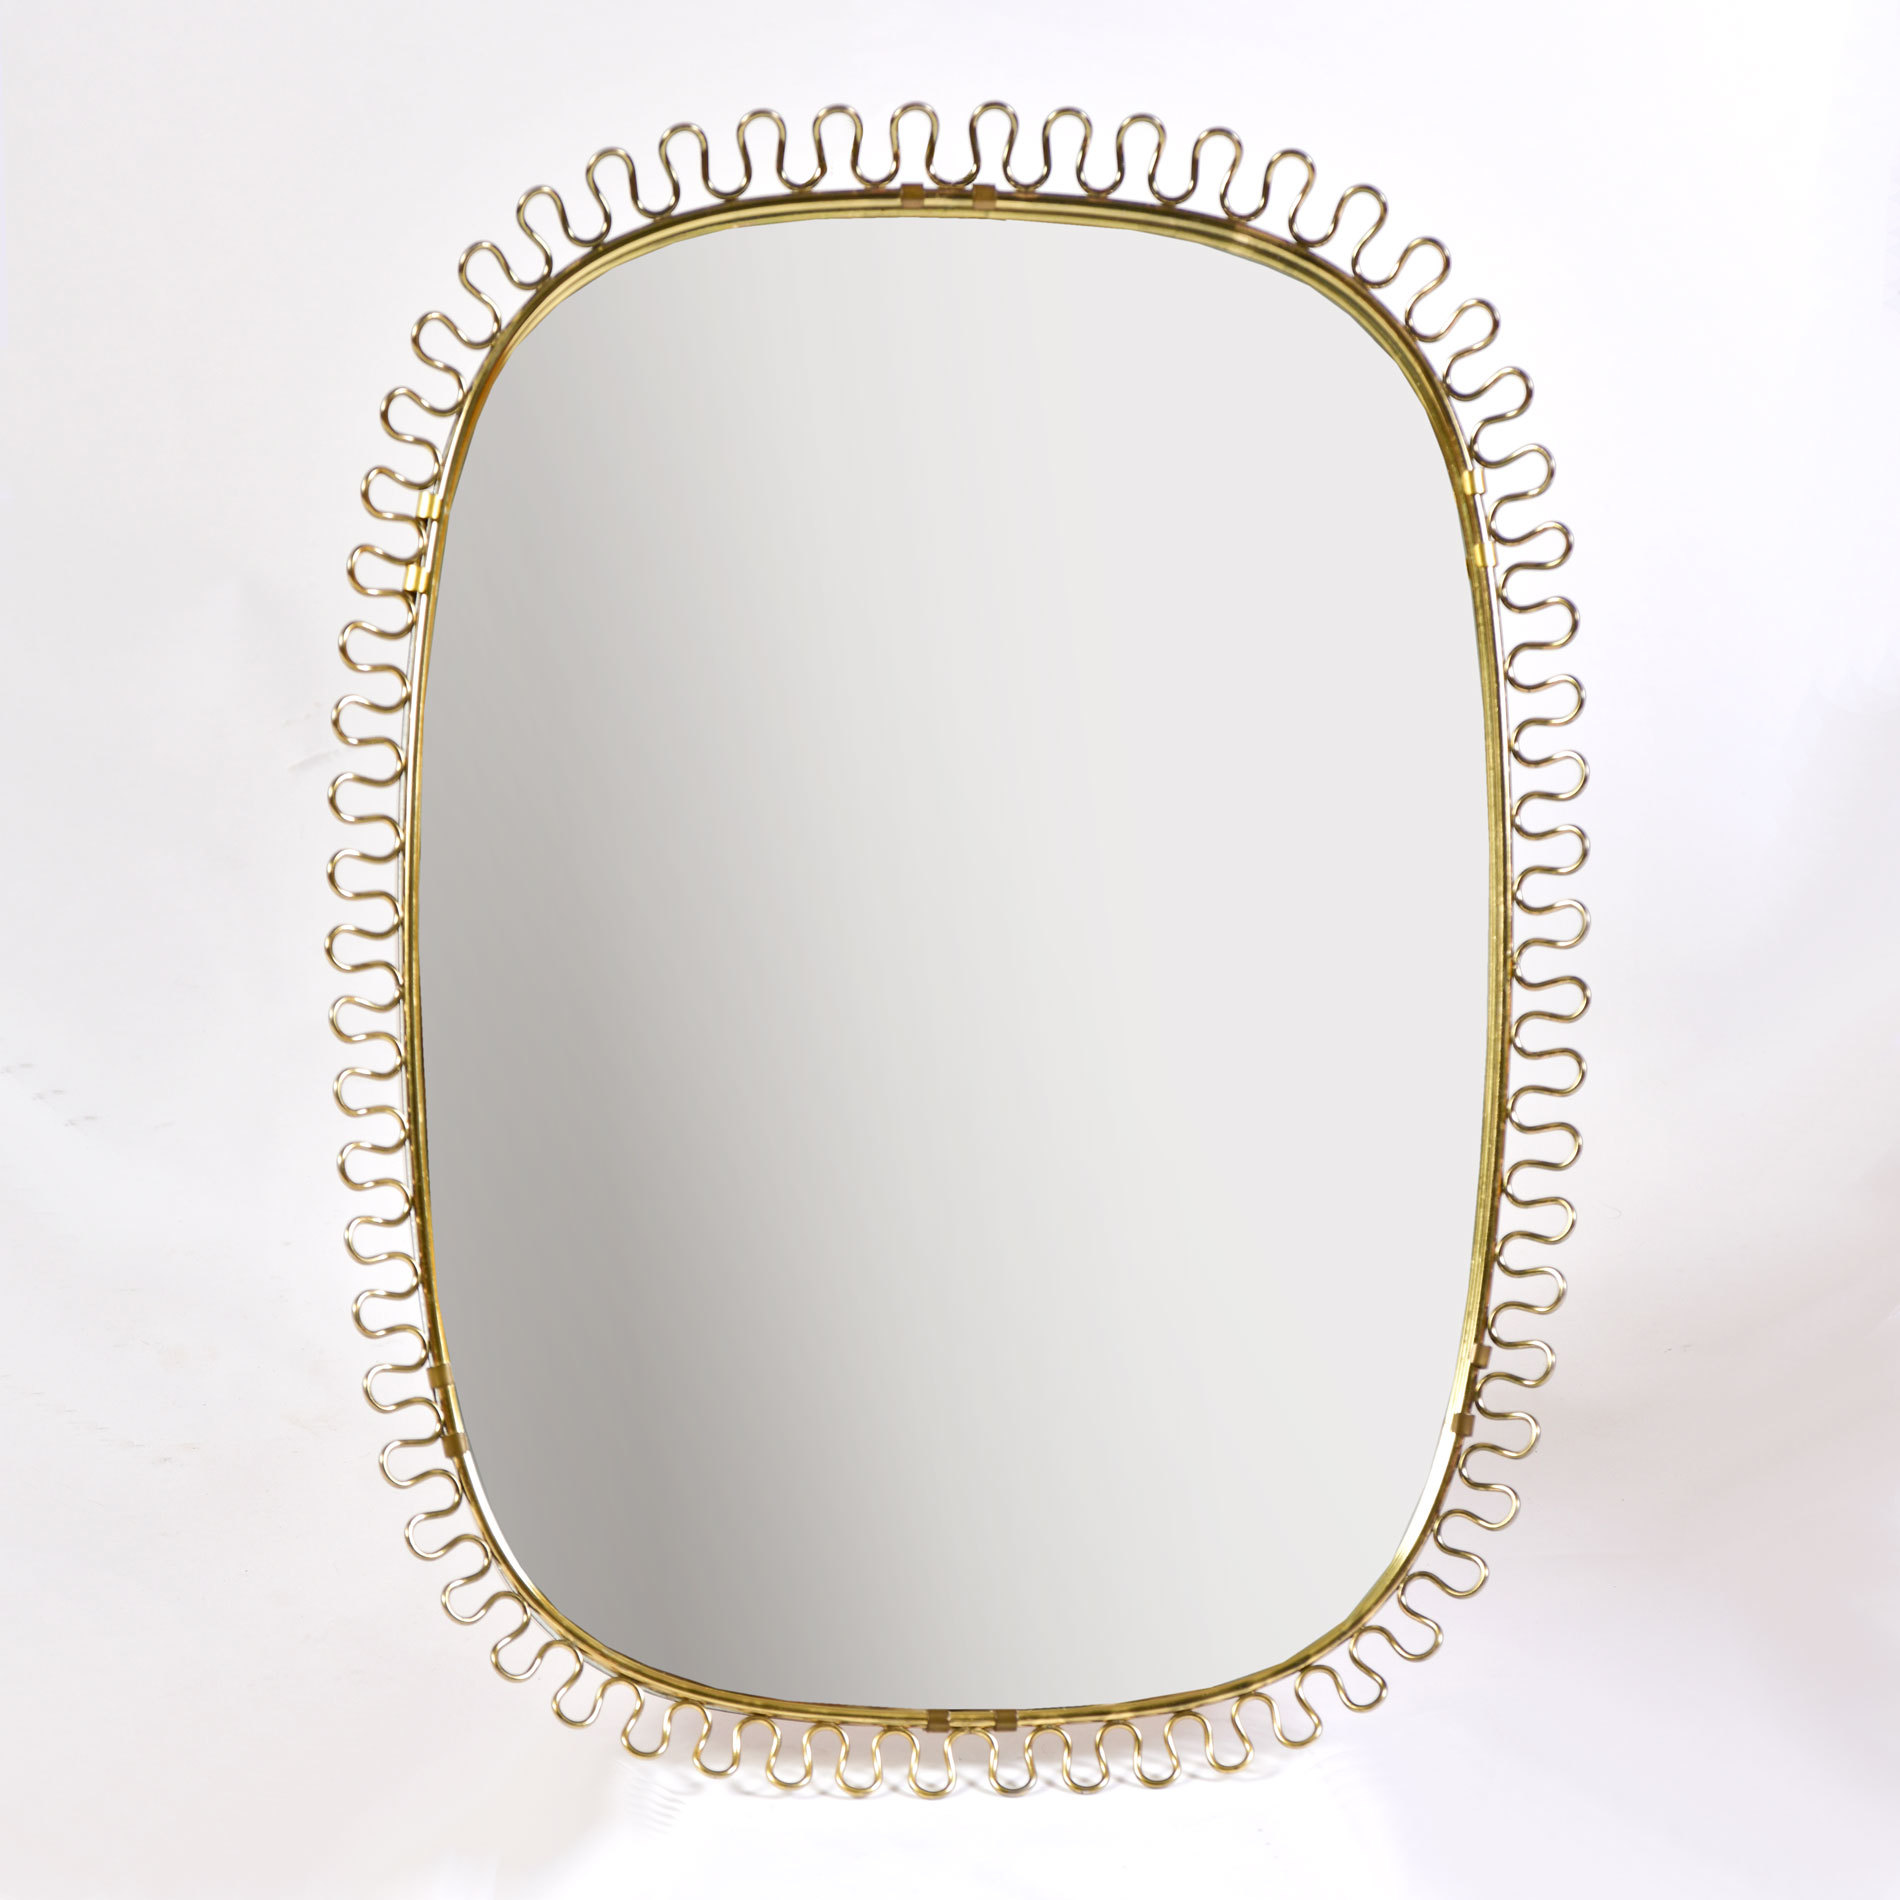 The image for Twirl Brass Wall Mirror 01